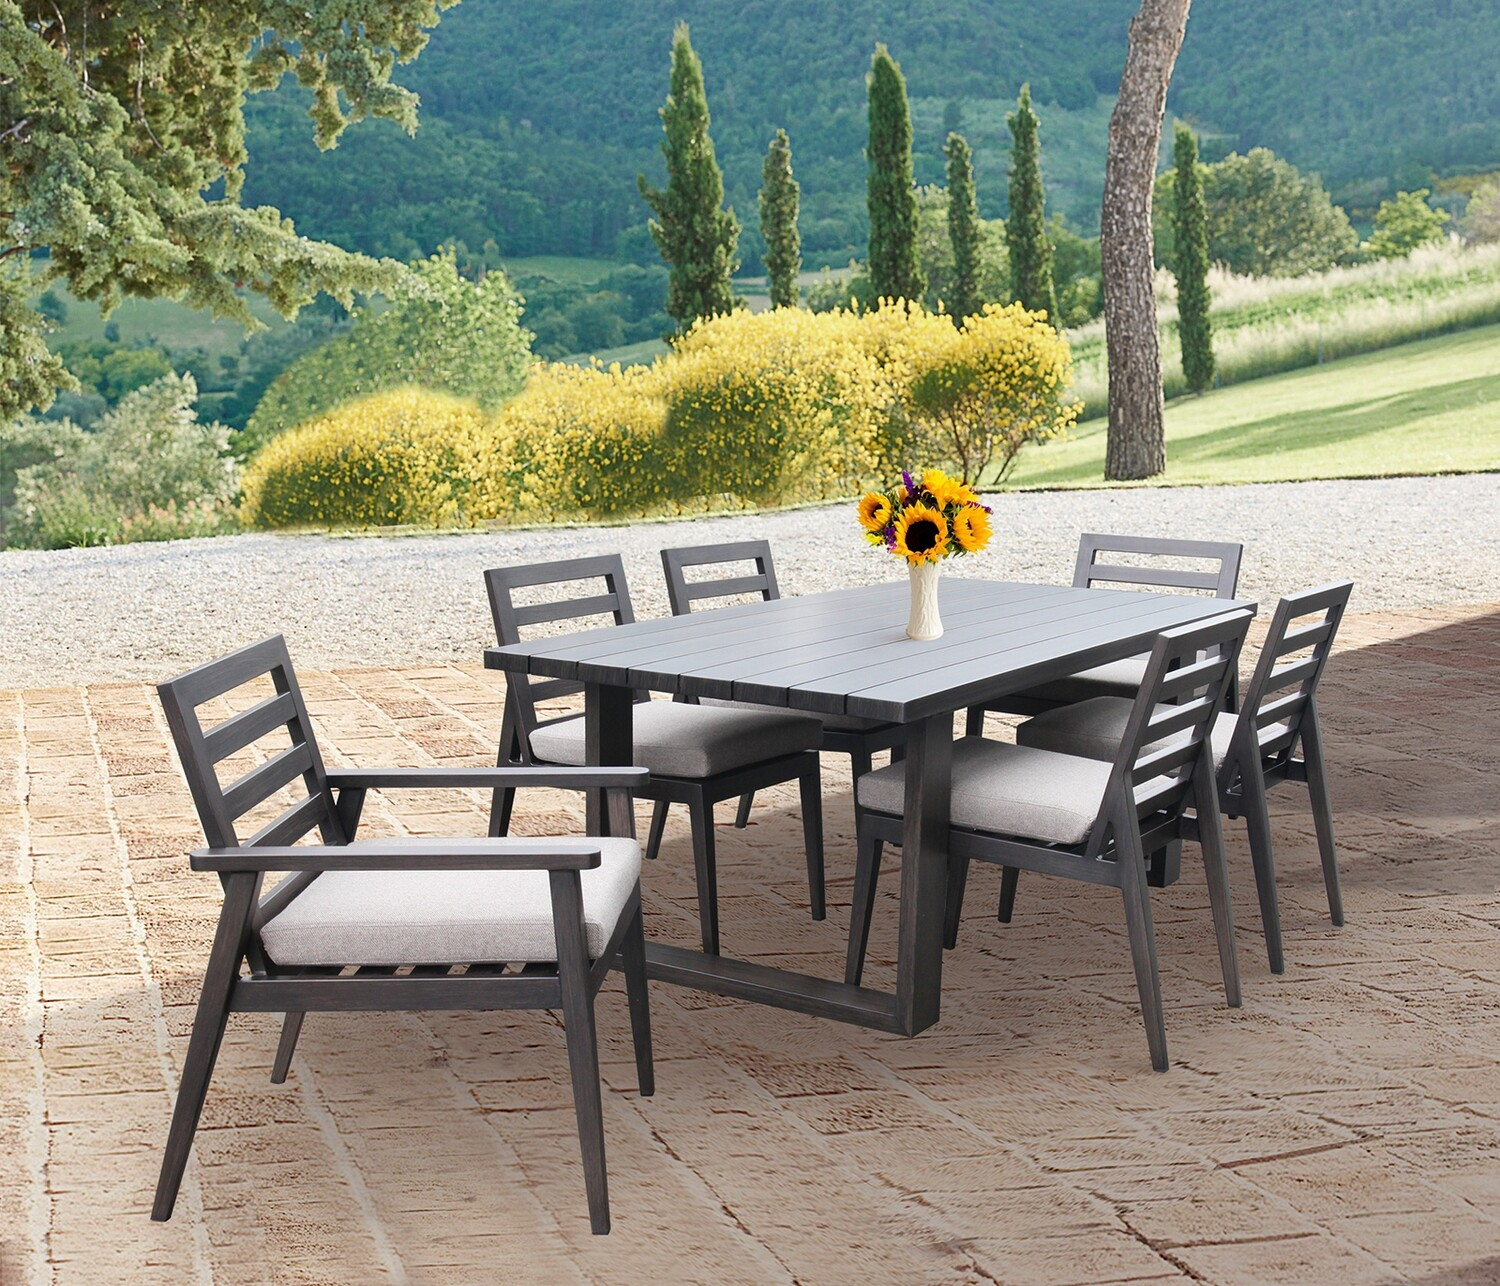 7-Piece Outdoor Patio Table and Chairs Dining Set